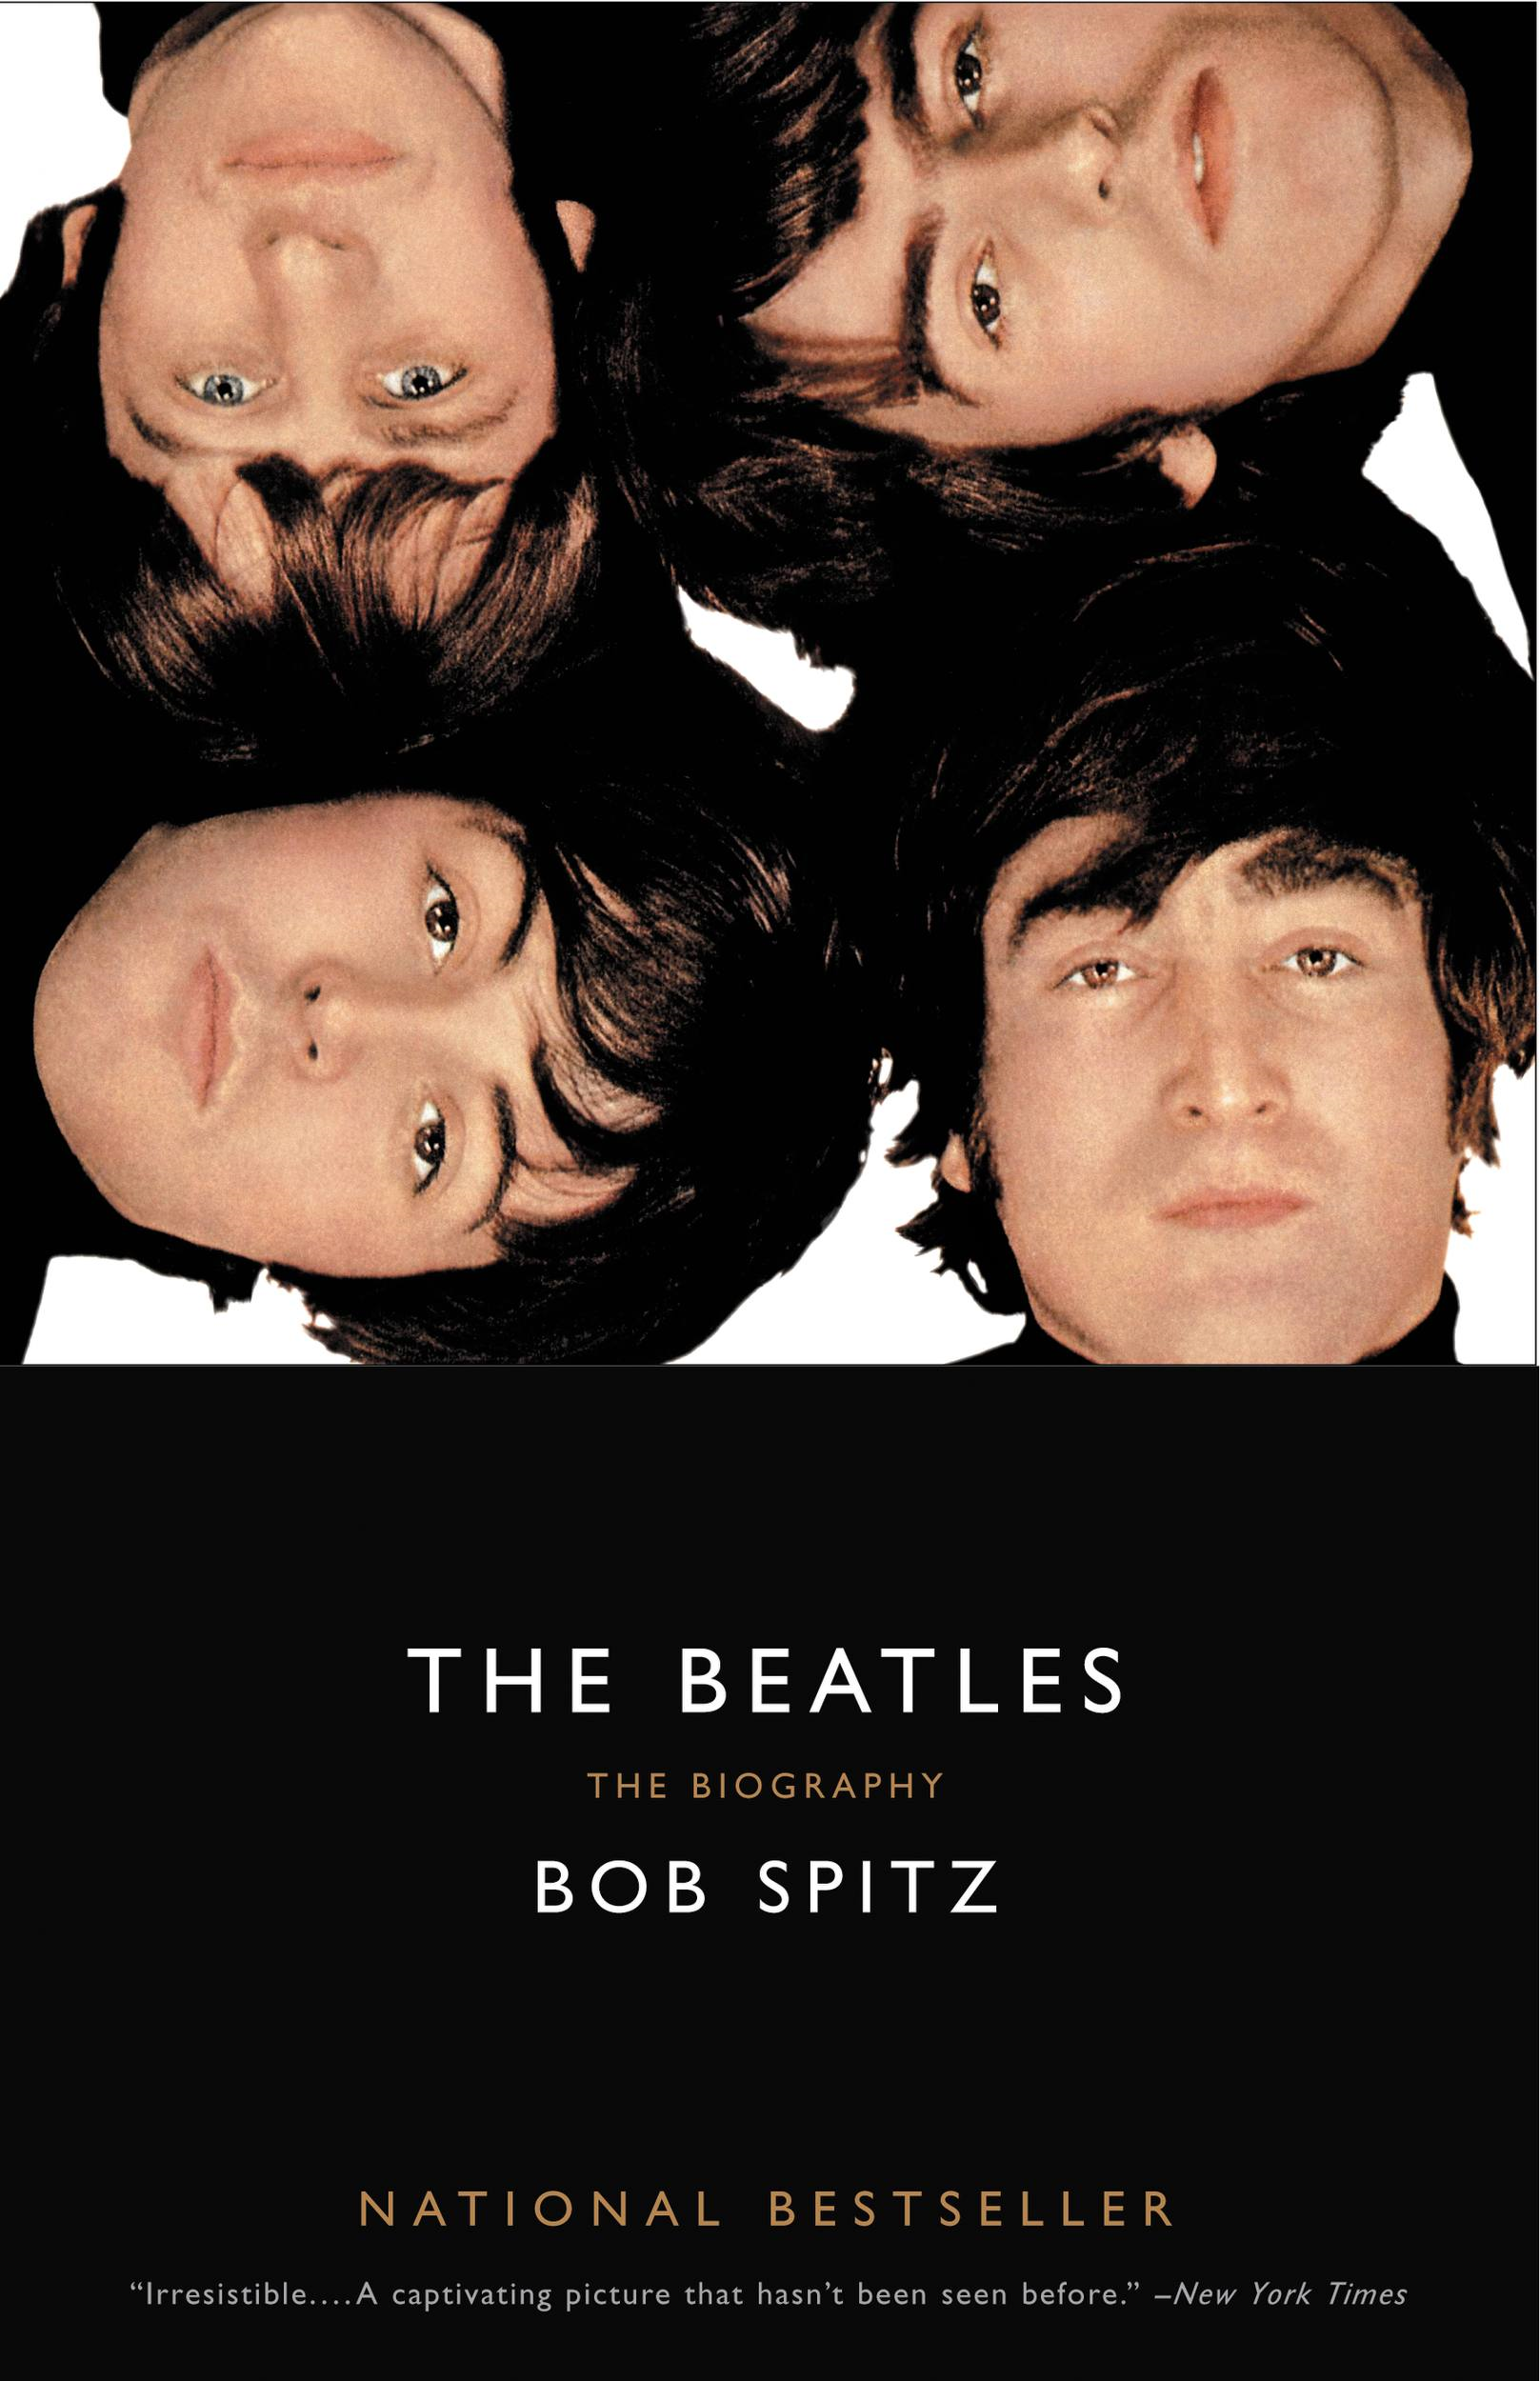 The Beatles By: Bob Spitz